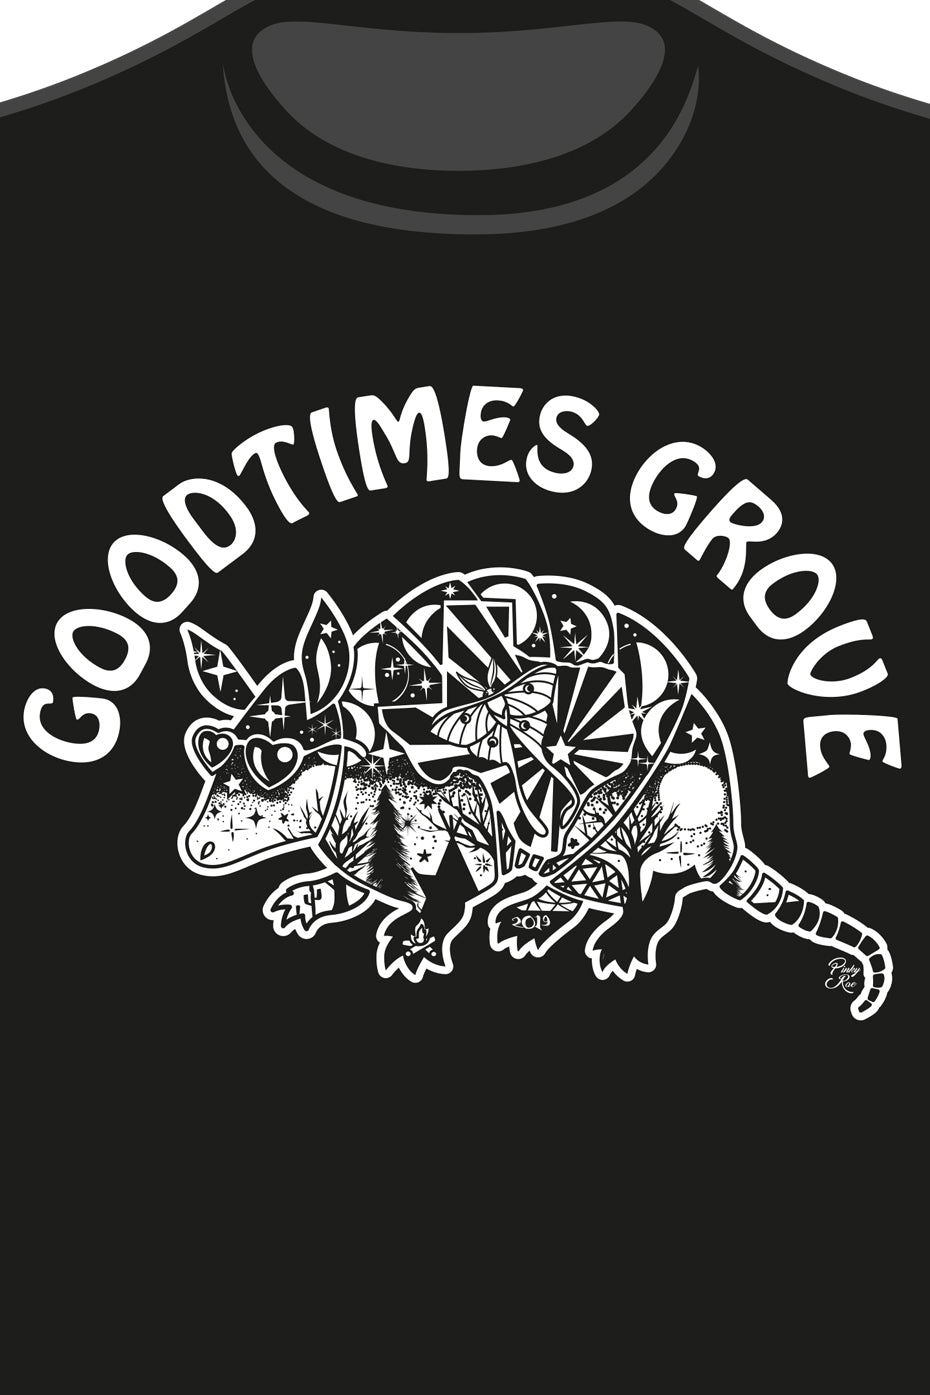 Goodtimes Grove 2019 by Pinky Rae